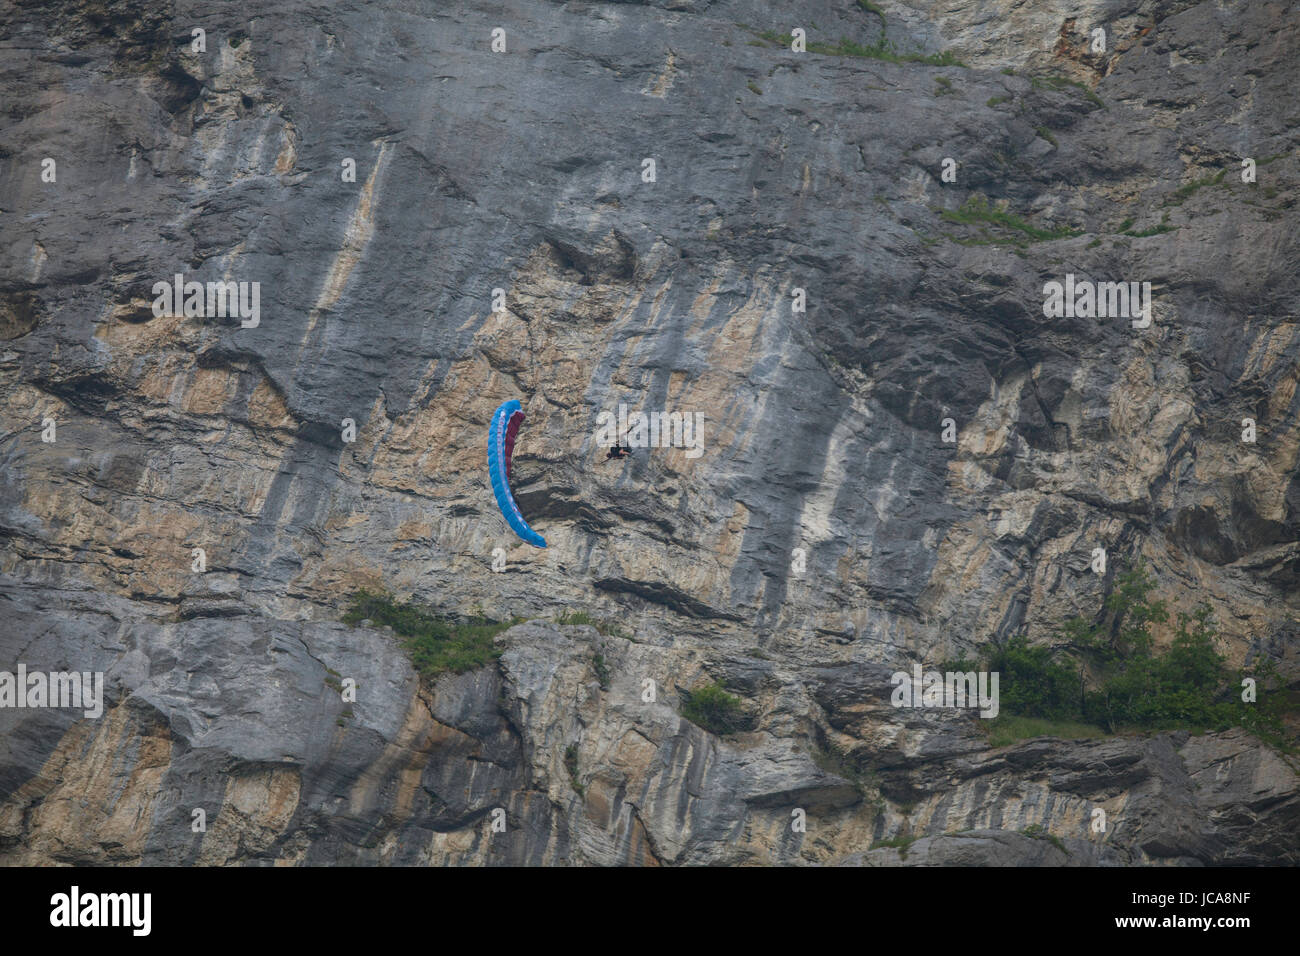 An unidentified person doing stunts with a parawing in front of a huge rock face.  Lauterbrunnen, Switzerland. - Stock Image